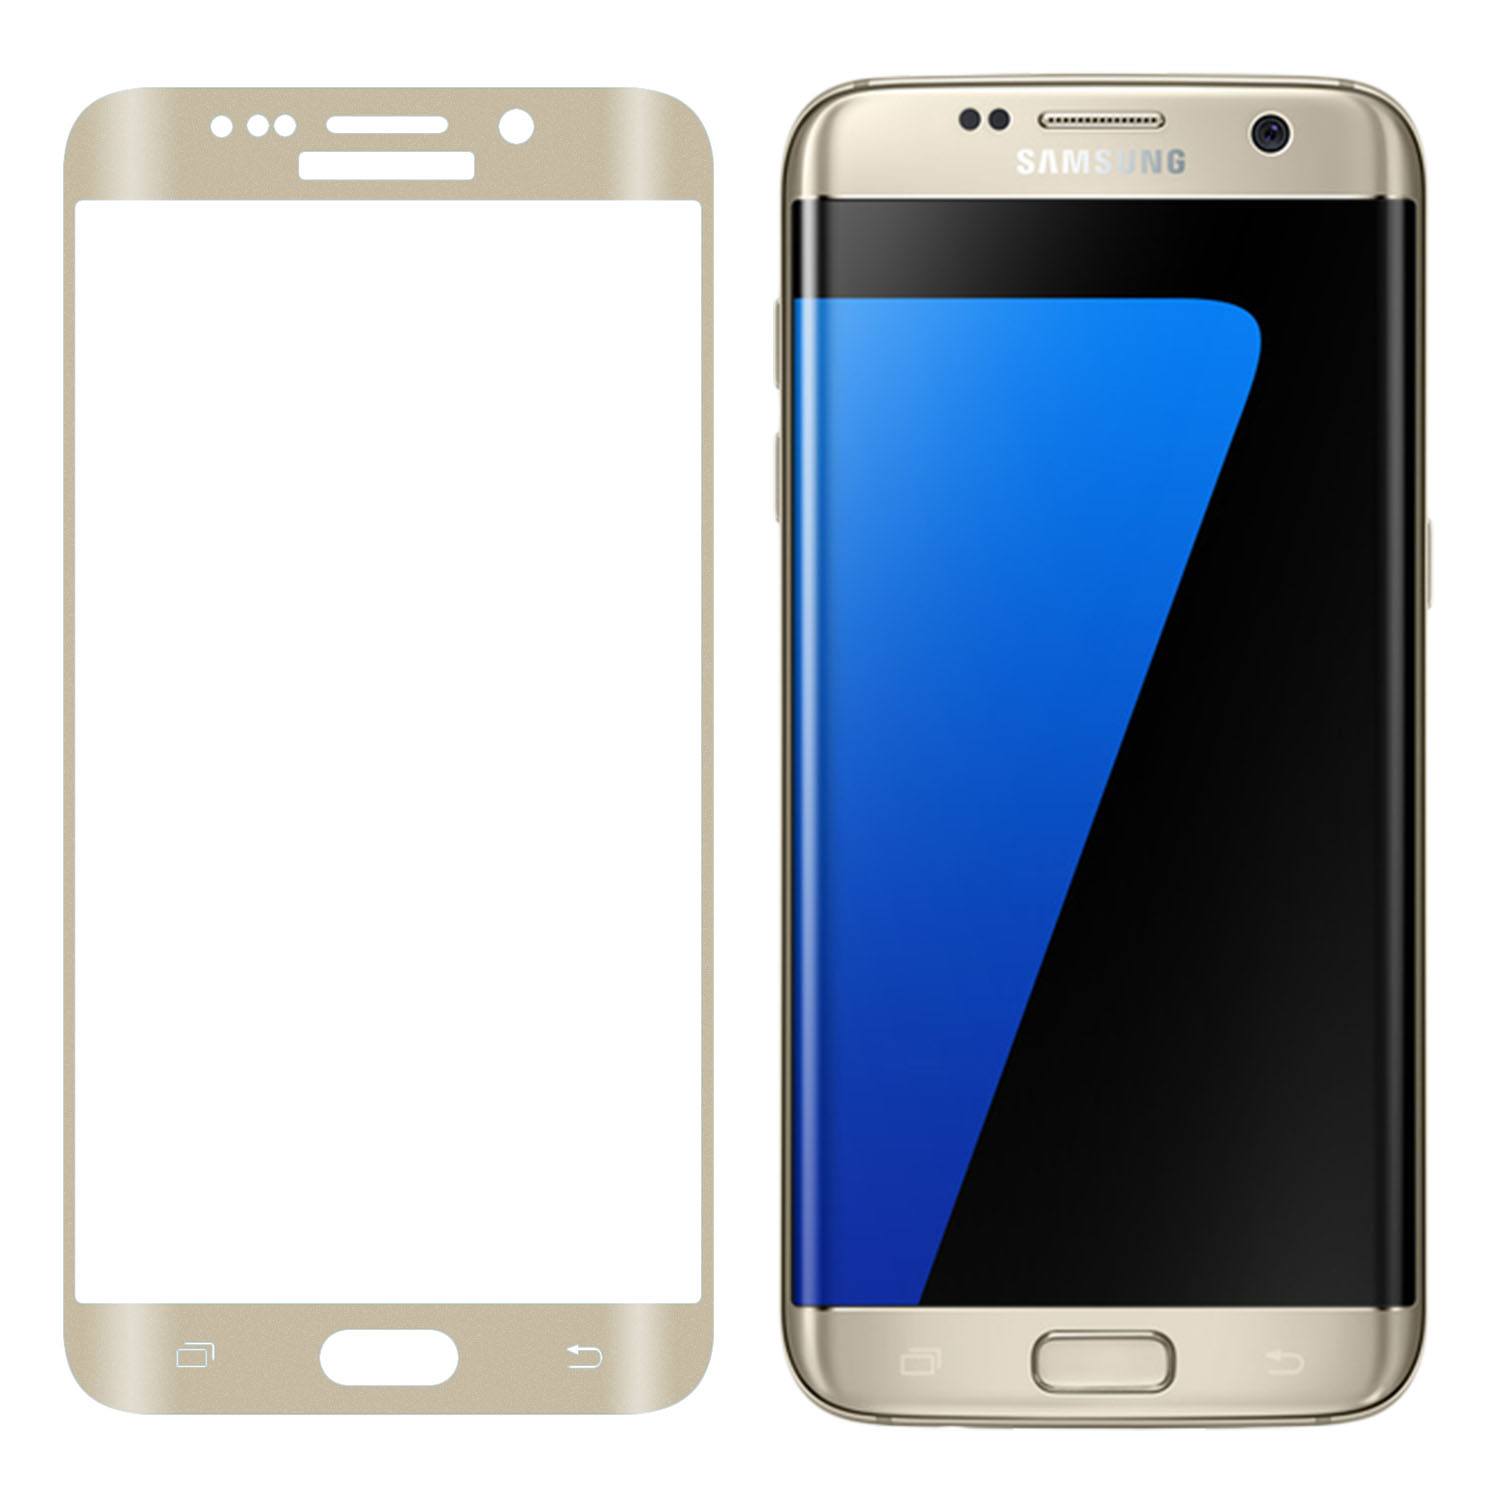 SOJITEK - Samsung Galaxy S7 Edge - 3D Full Curved Cover Tempered Glass Screen Protector (Silver)